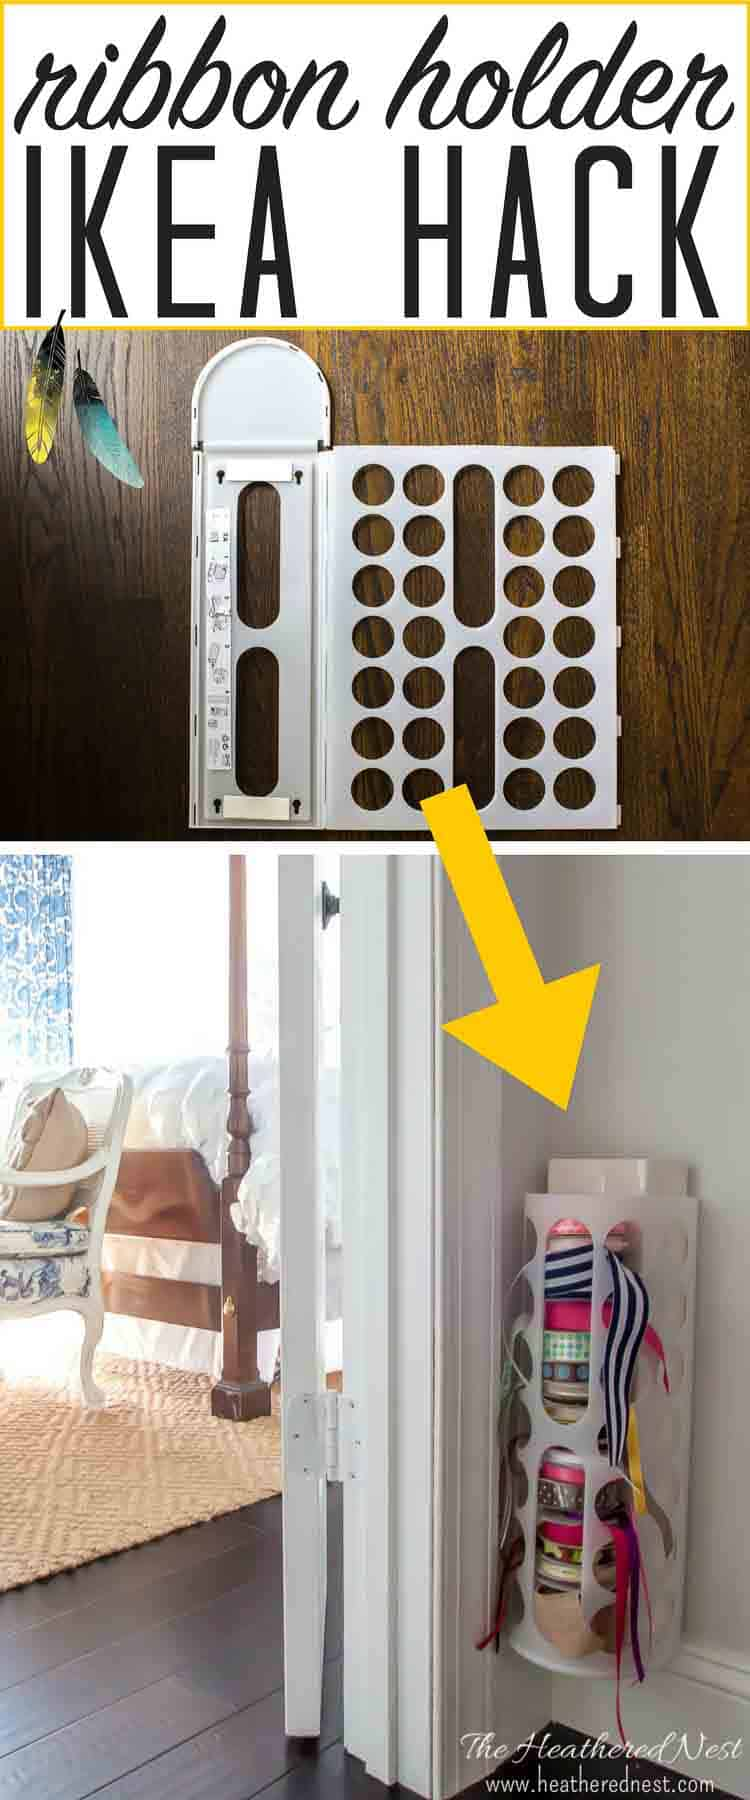 DIY ribbon holder Ikea hack! Easy, quick & made in minutes from an inexpensive $2 Ikea Variera bag dispenser! from heatherednest.com